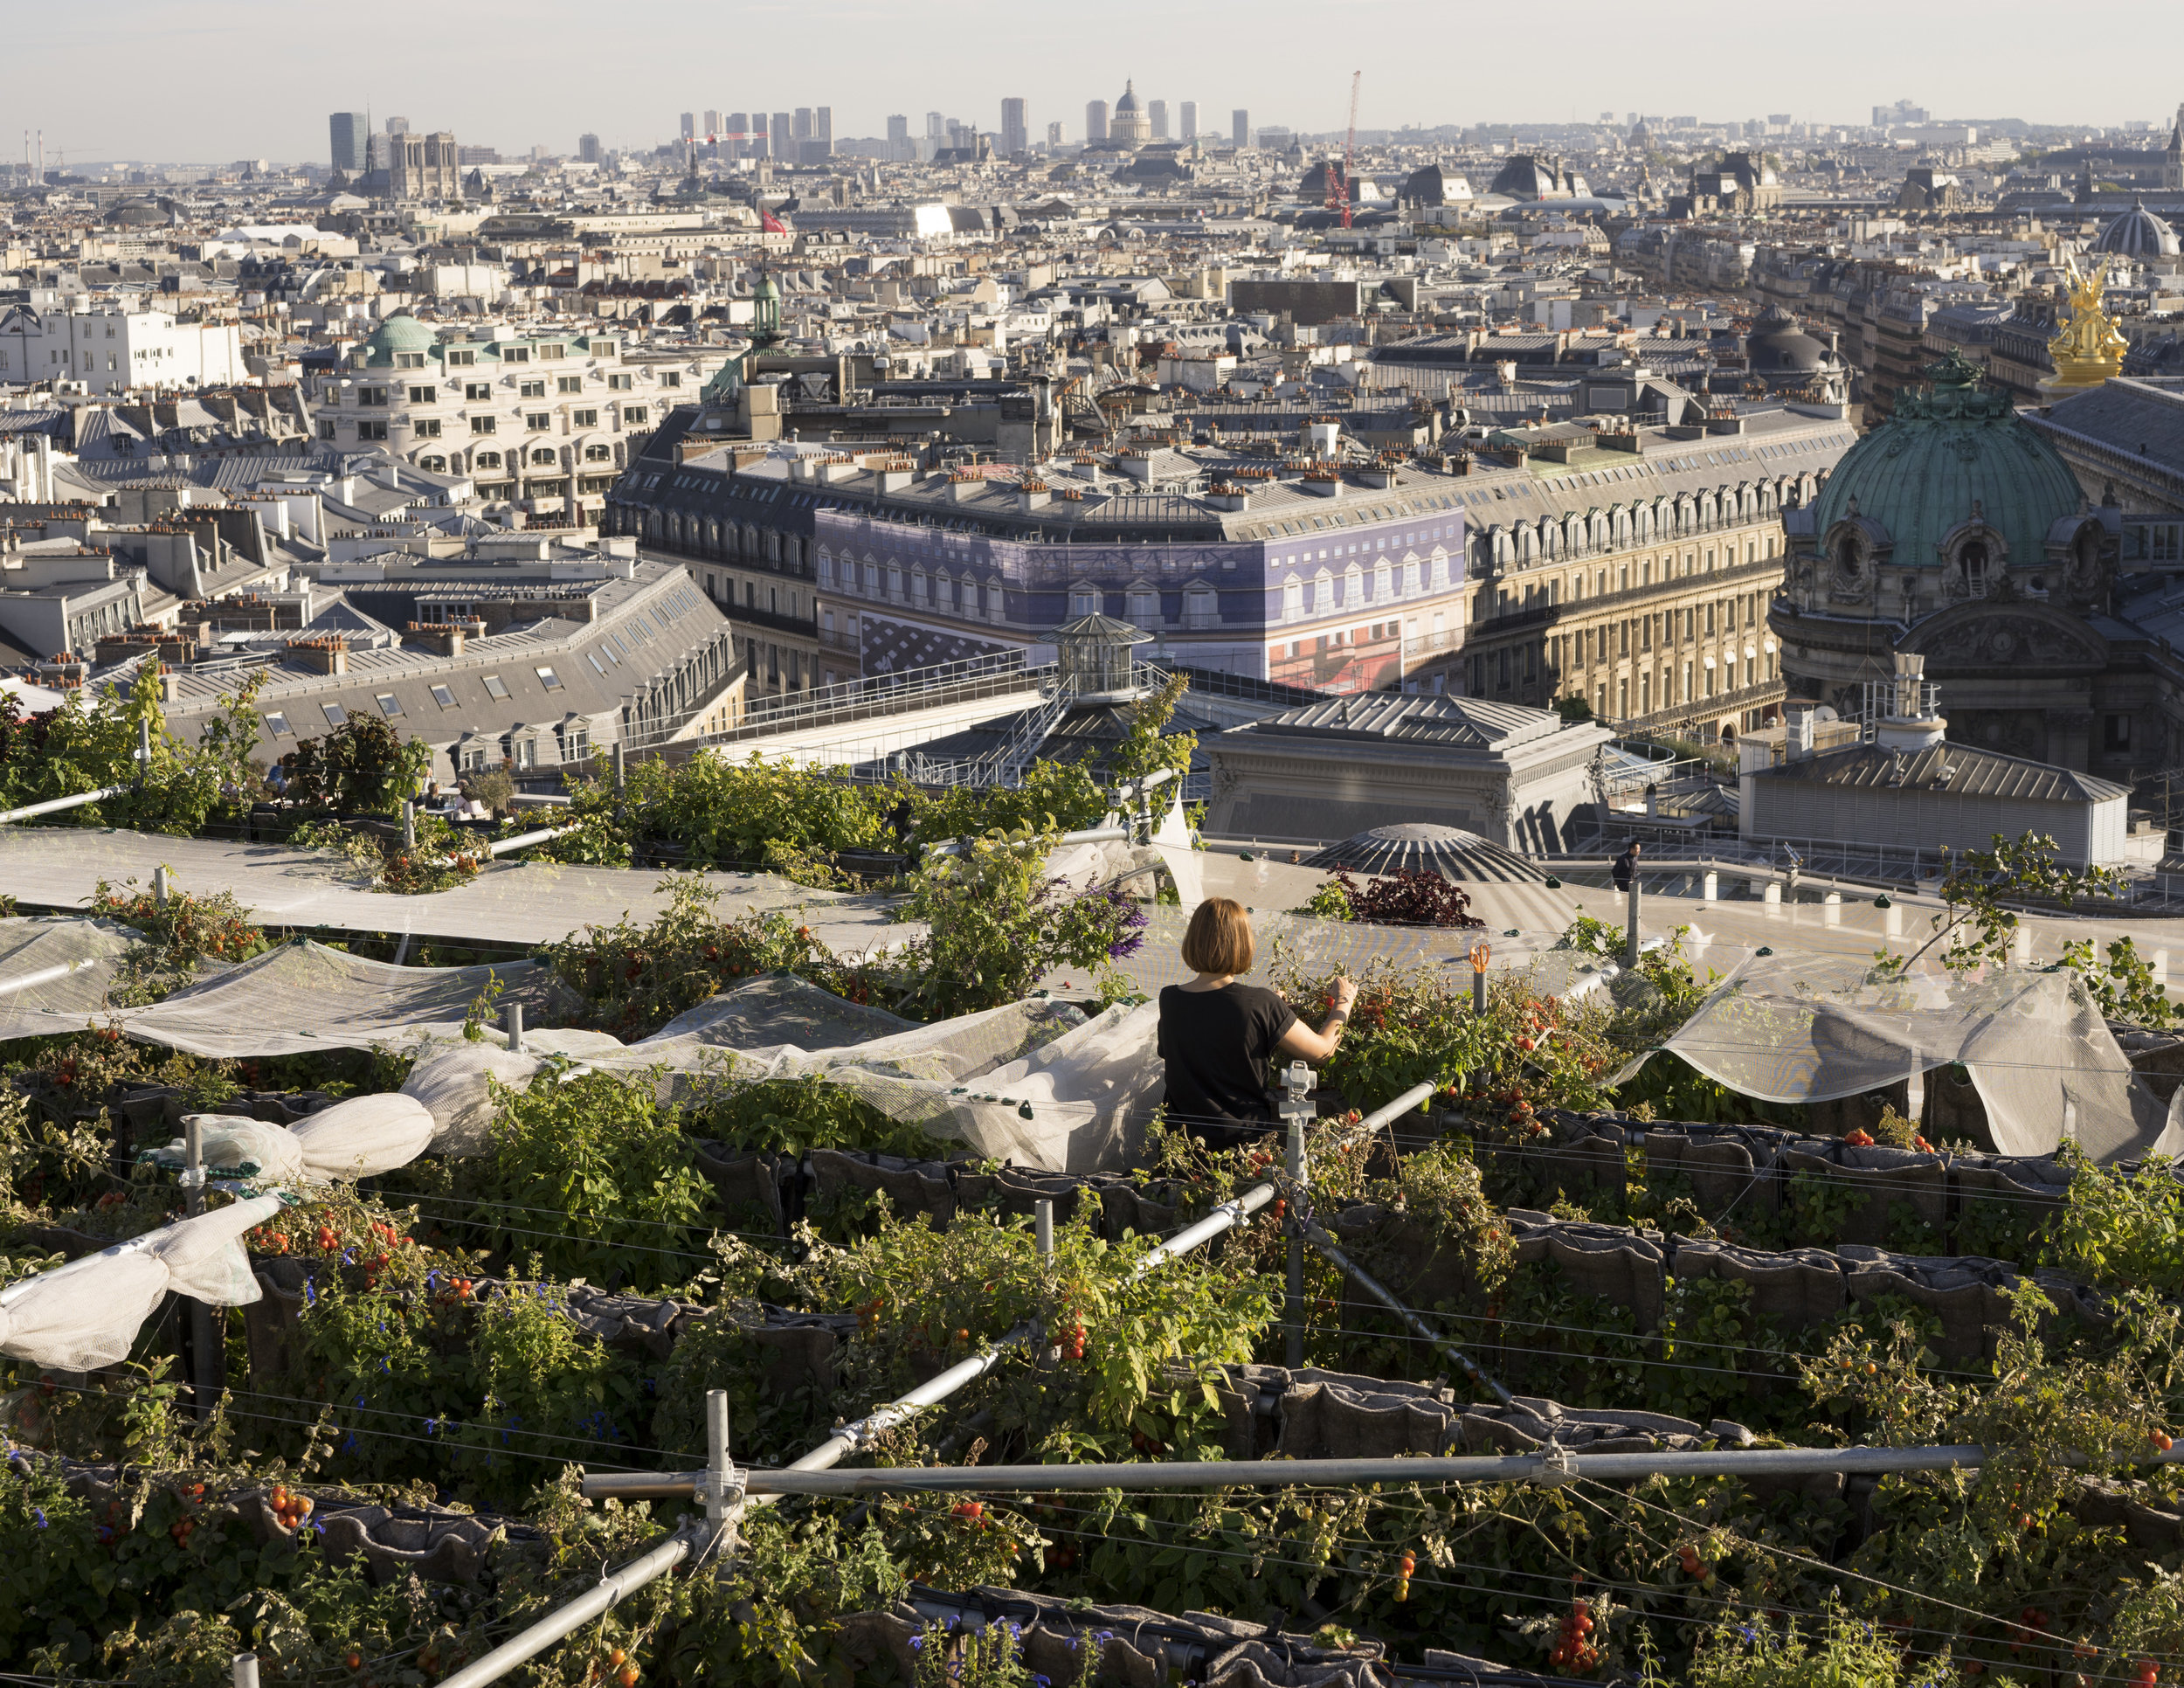 Urban garden on Galeries Lafayette Paris Haussmann's rooftop